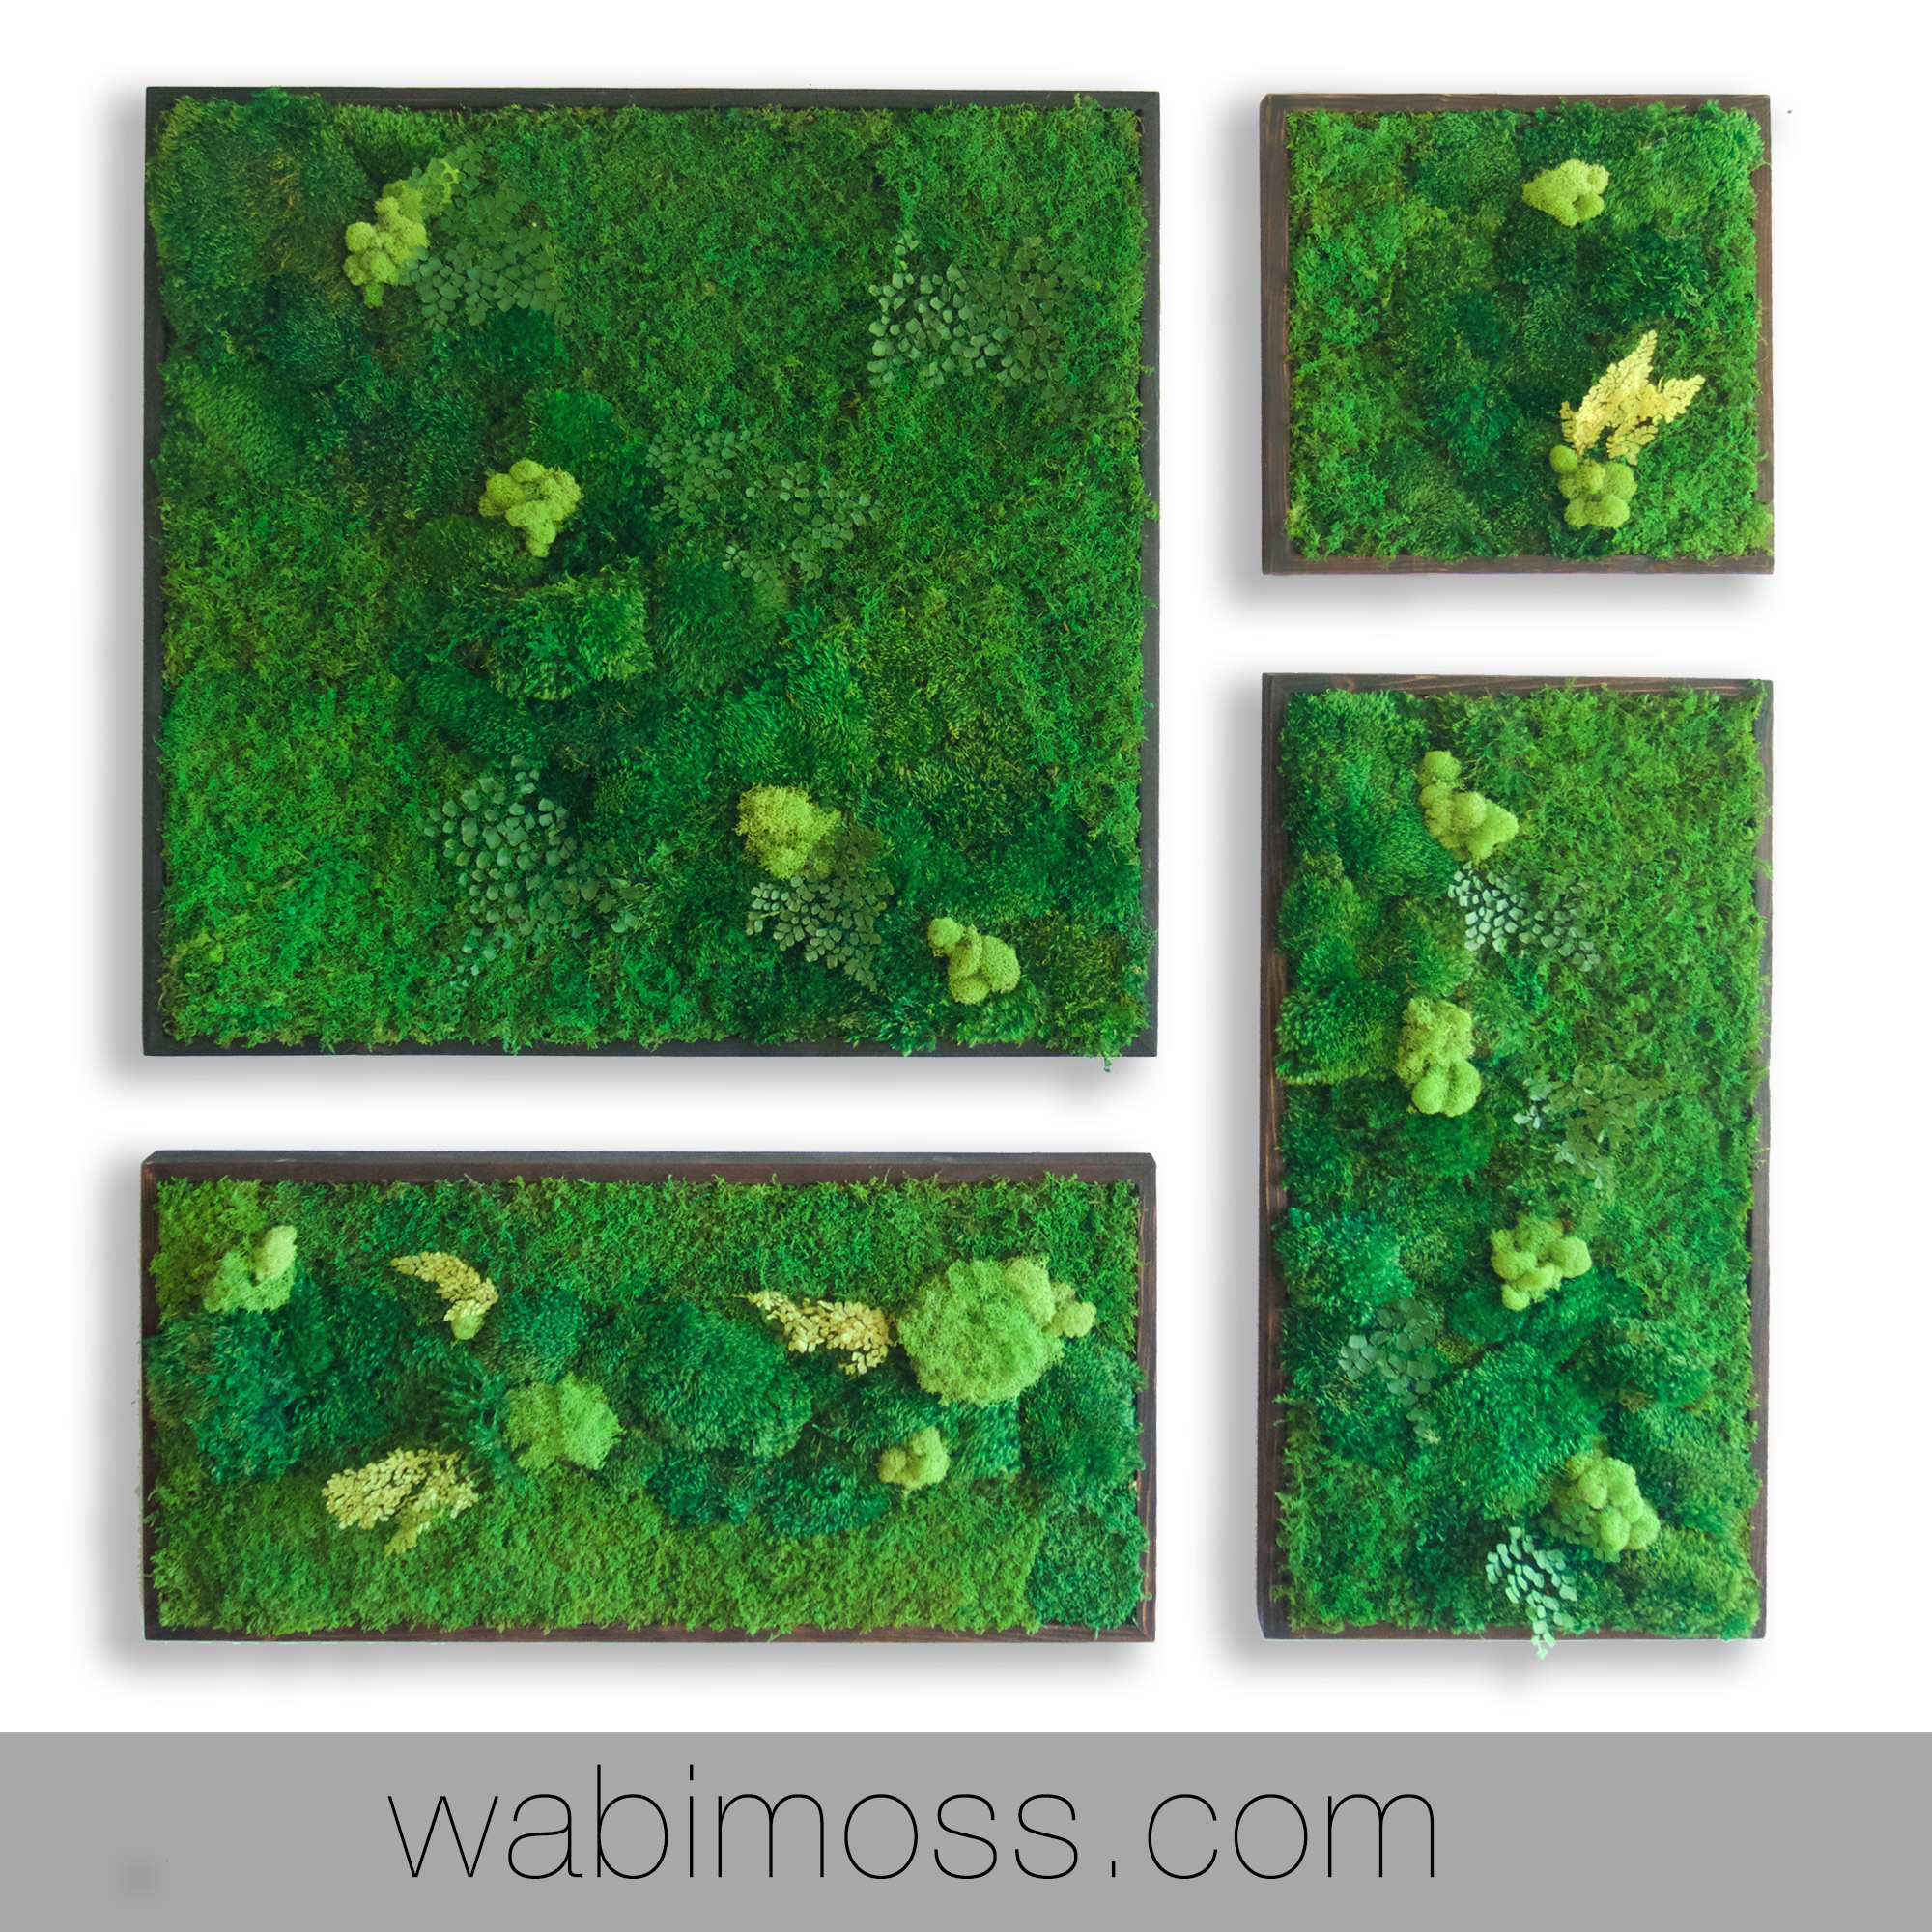 58×58u2033 Real Preserved Moss Wall Art Green Wall Collage No Sticks. No Care Green  Wall Art. Real Preserved Moss And Ferns